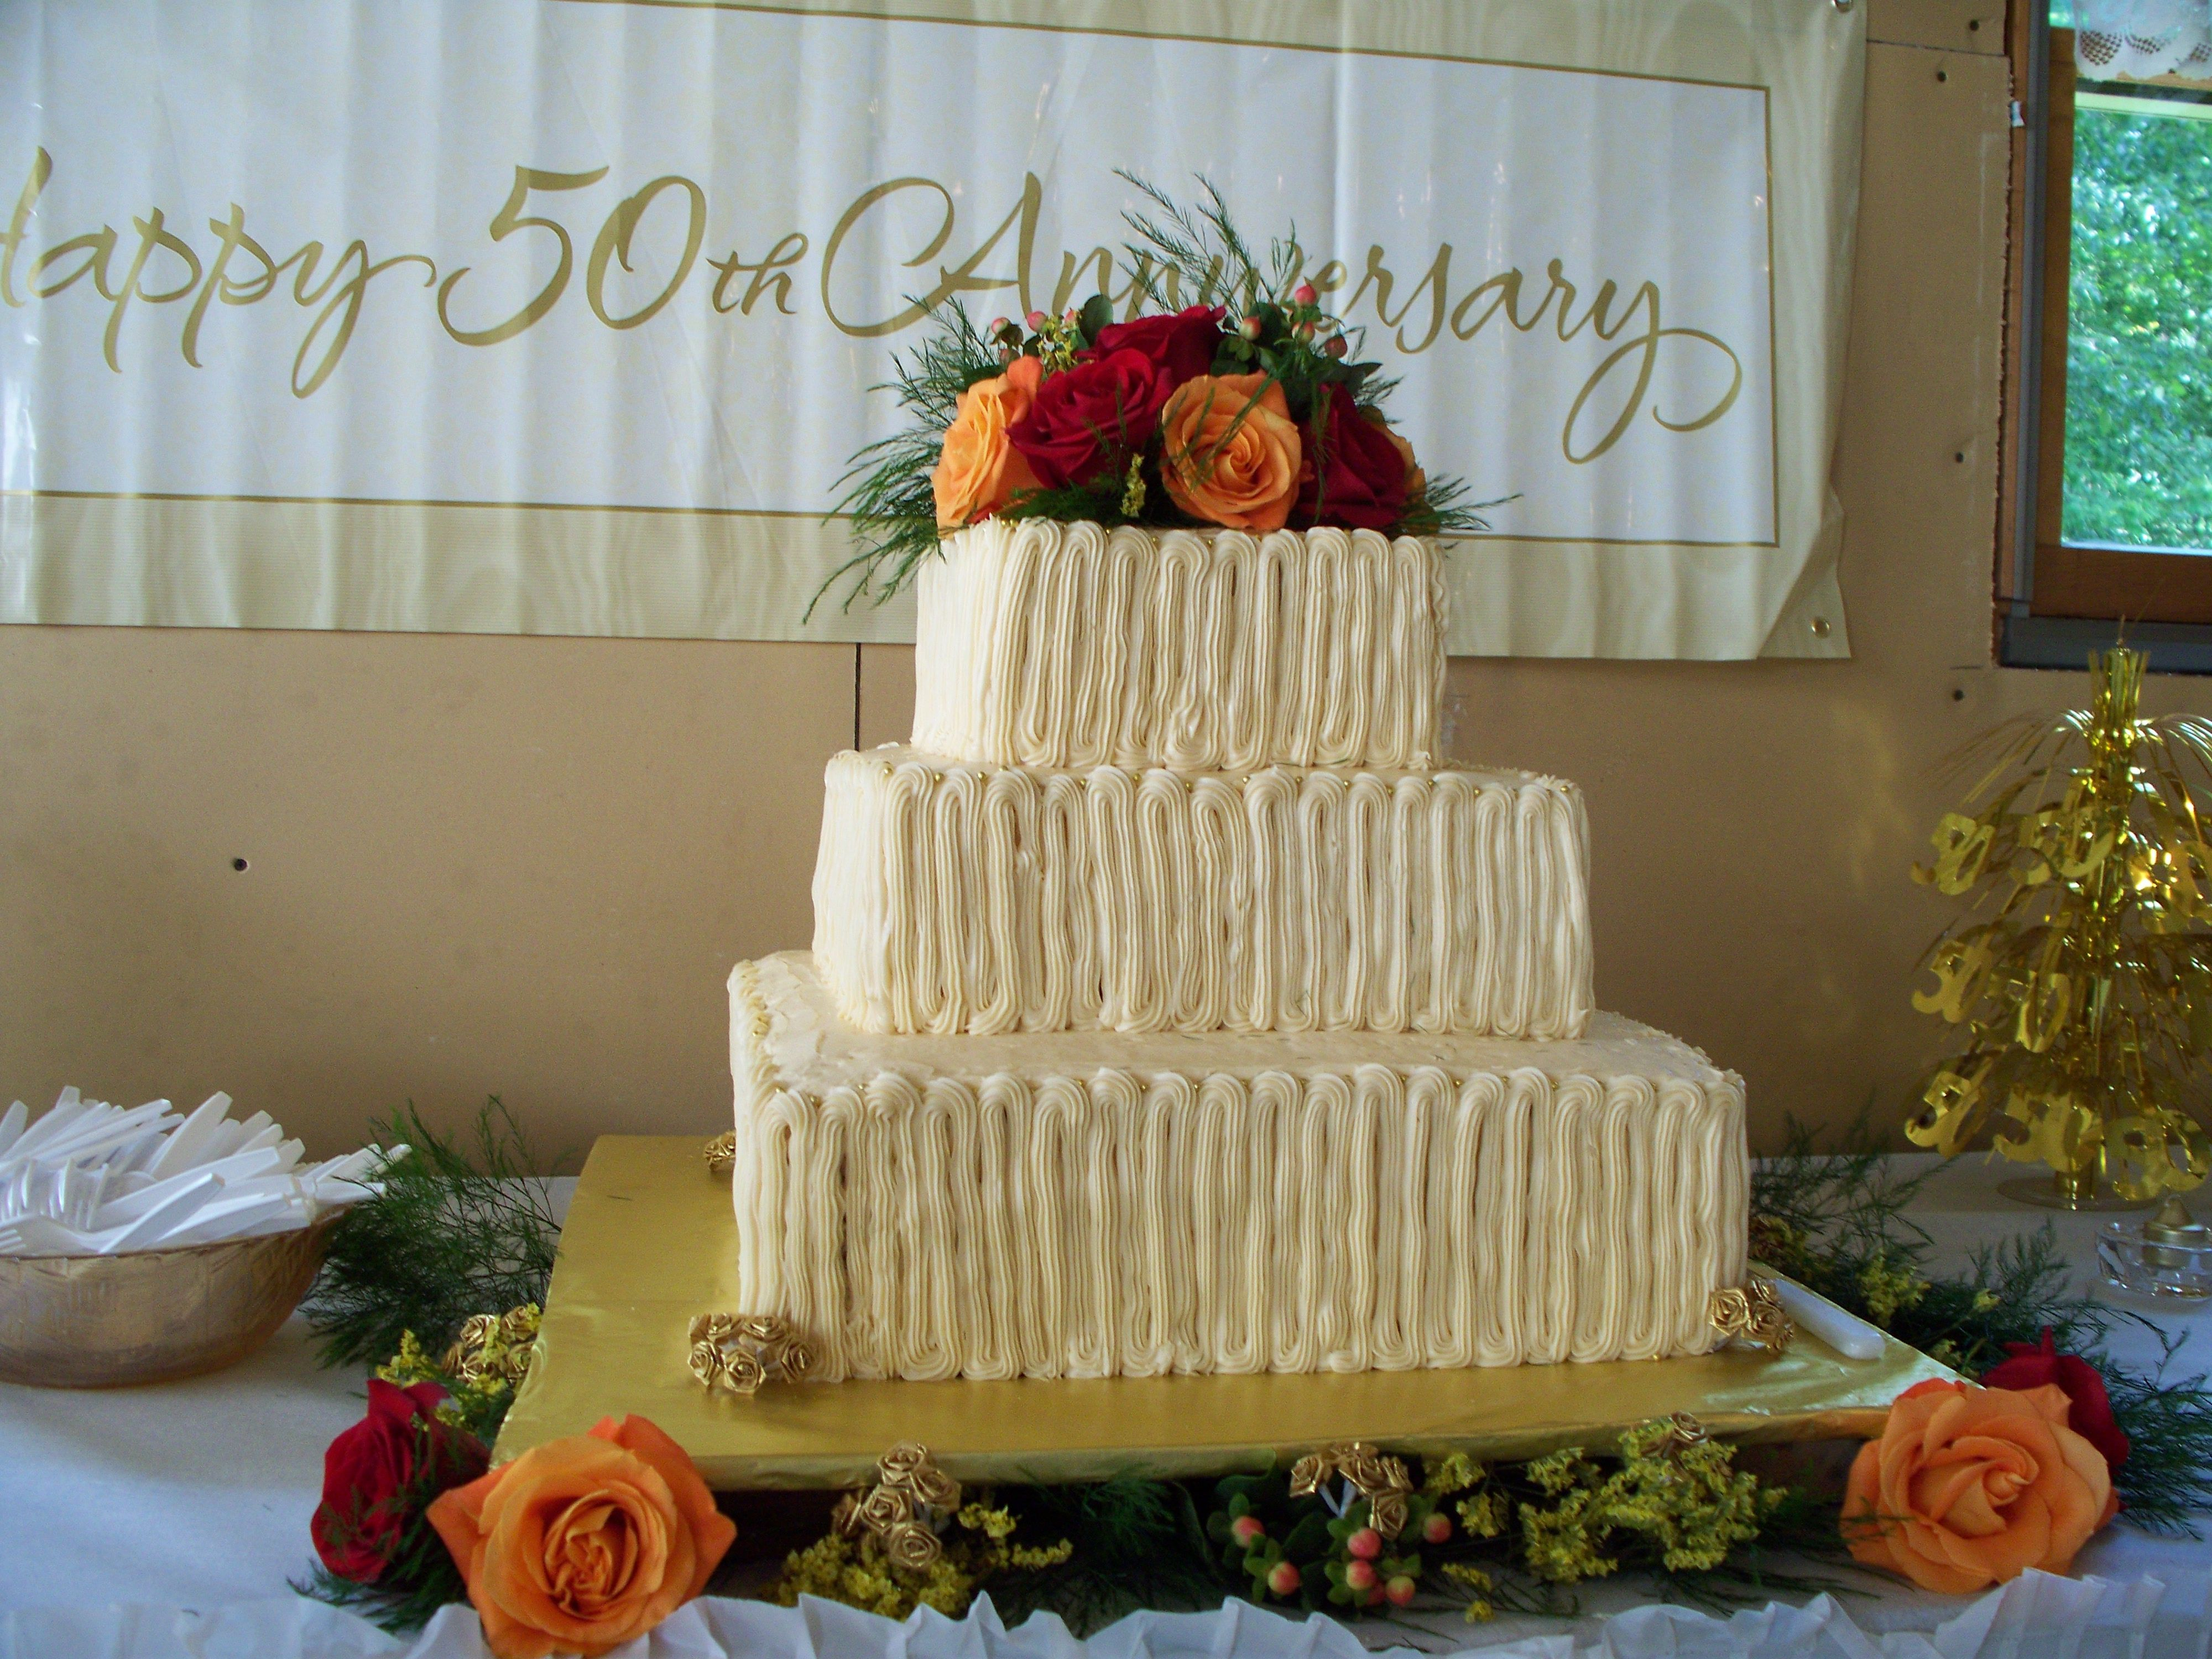 Nice anniversary cake idea using carrot cake cream cheese nice anniversary cake idea using carrot cake cream cheese frosting and fresh flowers negle Image collections